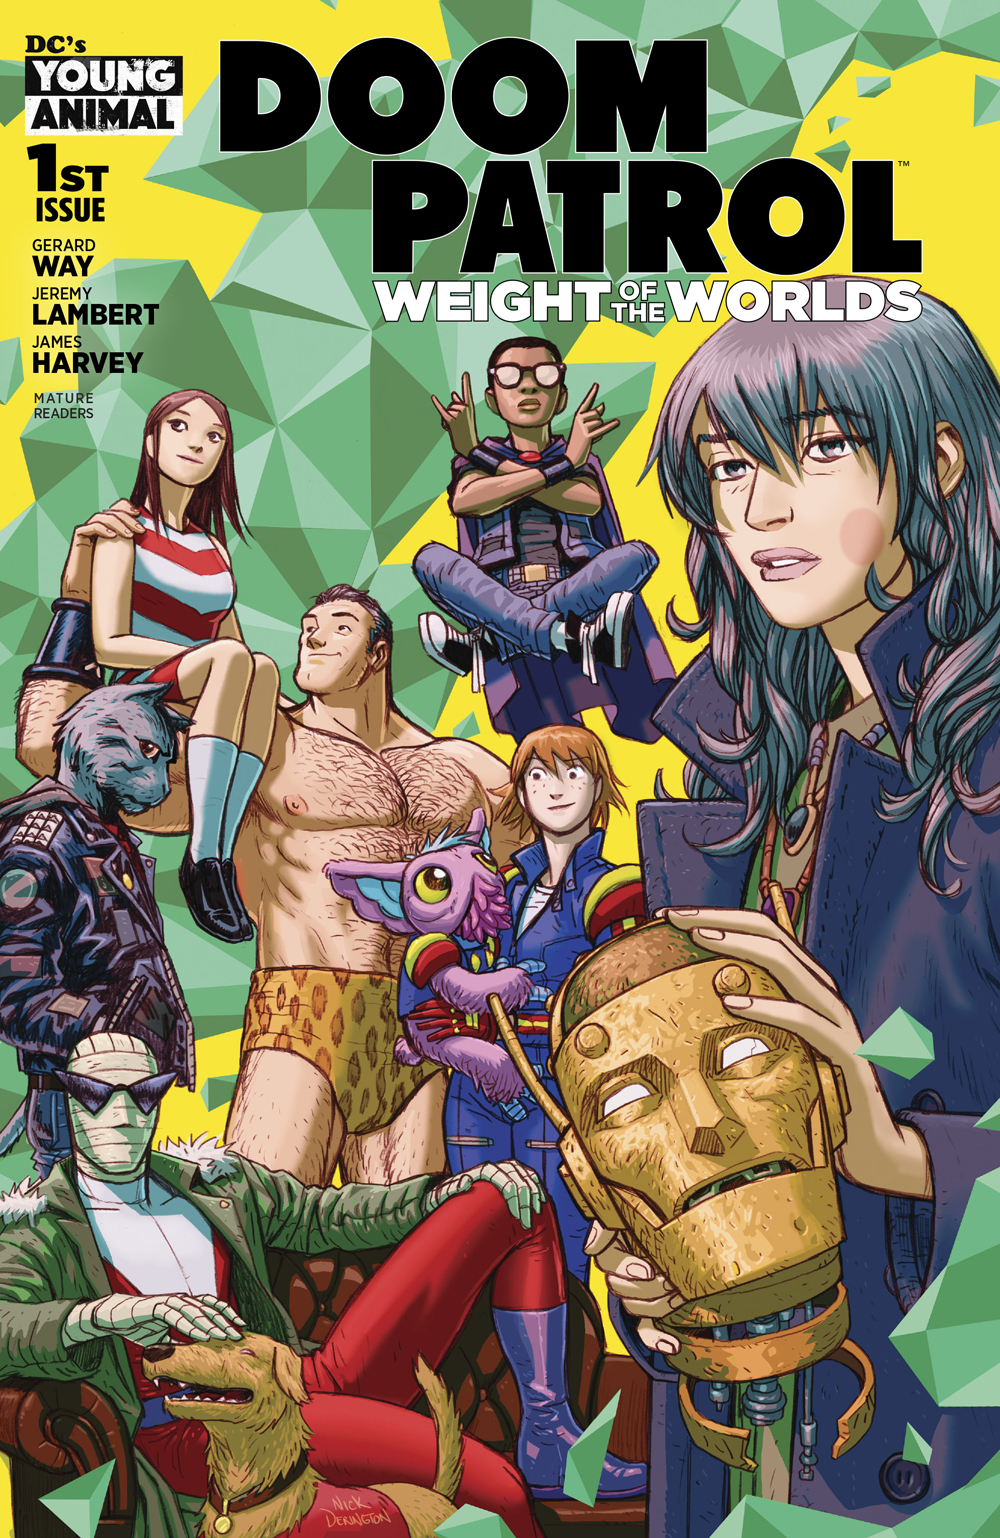 May190367 Doom Patrol Weight Of The Worlds 1 Mr Previews World